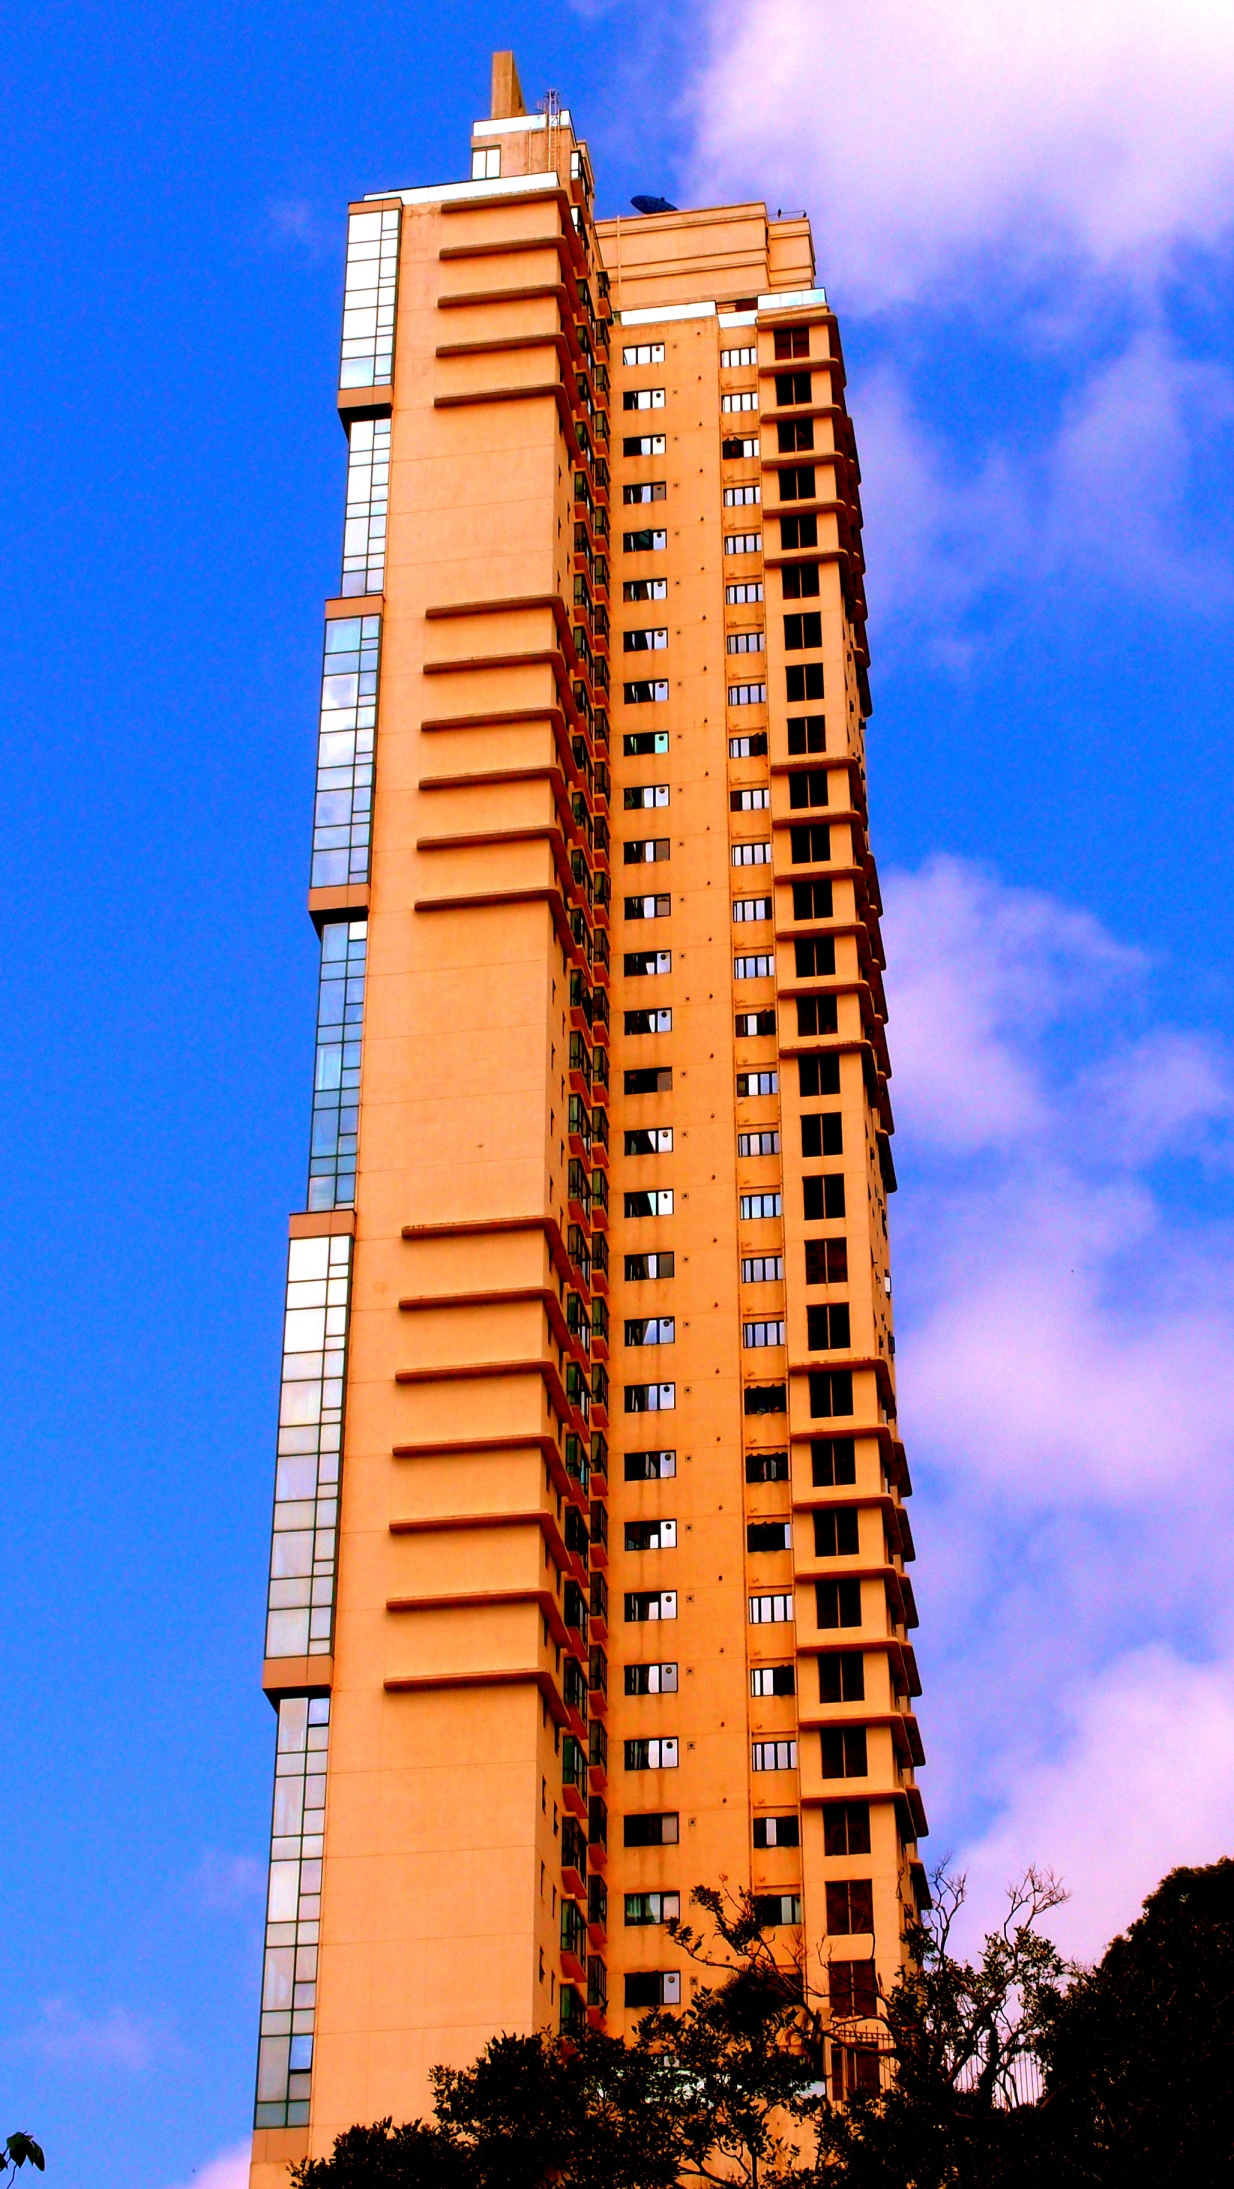 Another fancy apartment block